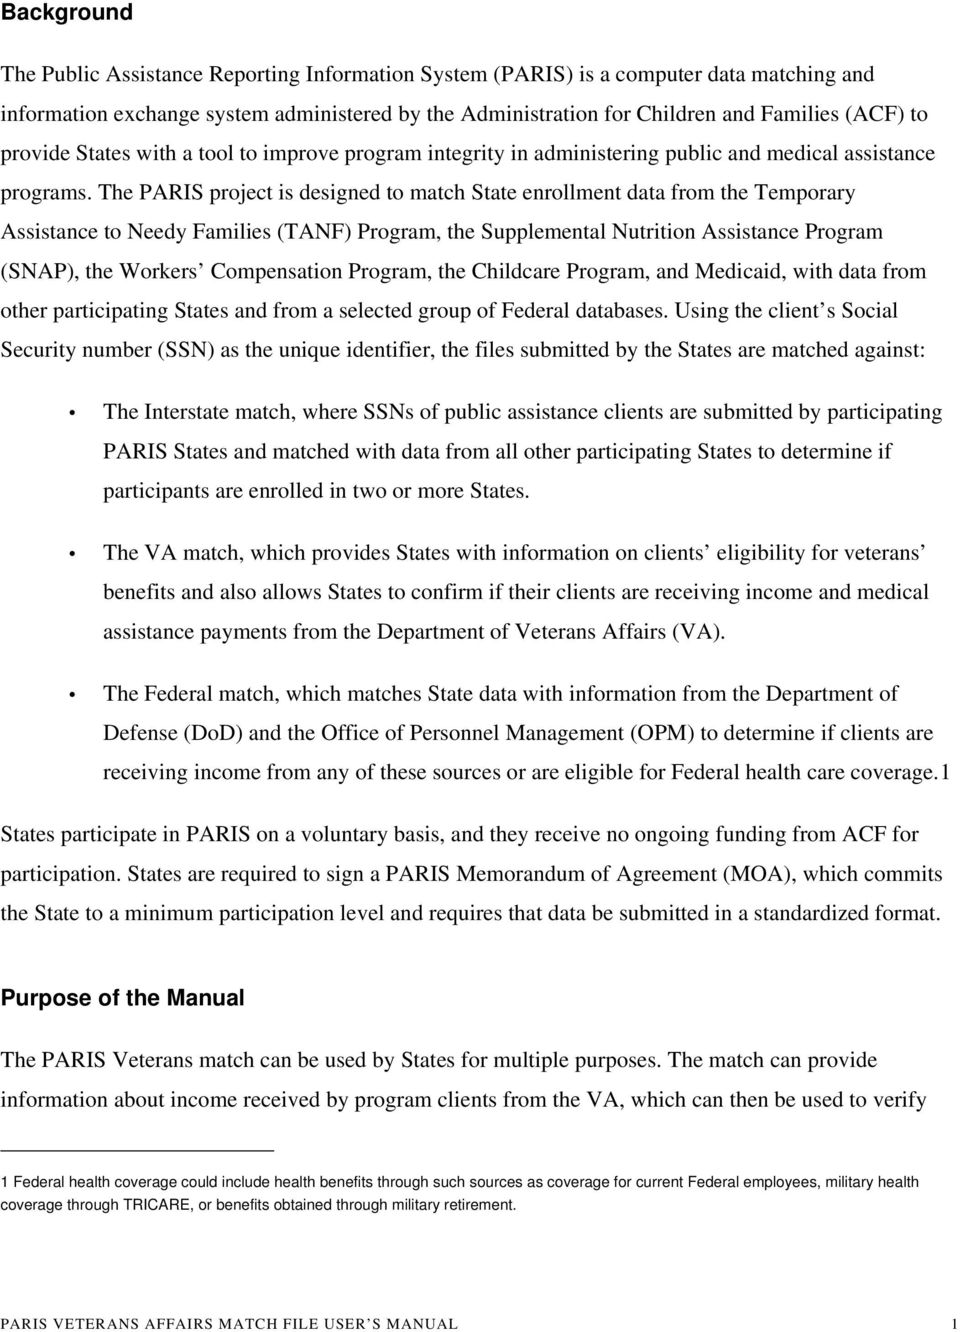 The PARIS project is designed to match State enrollment data from the Temporary Assistance to Needy Families (TANF) Program, the Supplemental Nutrition Assistance Program (SNAP), the Workers